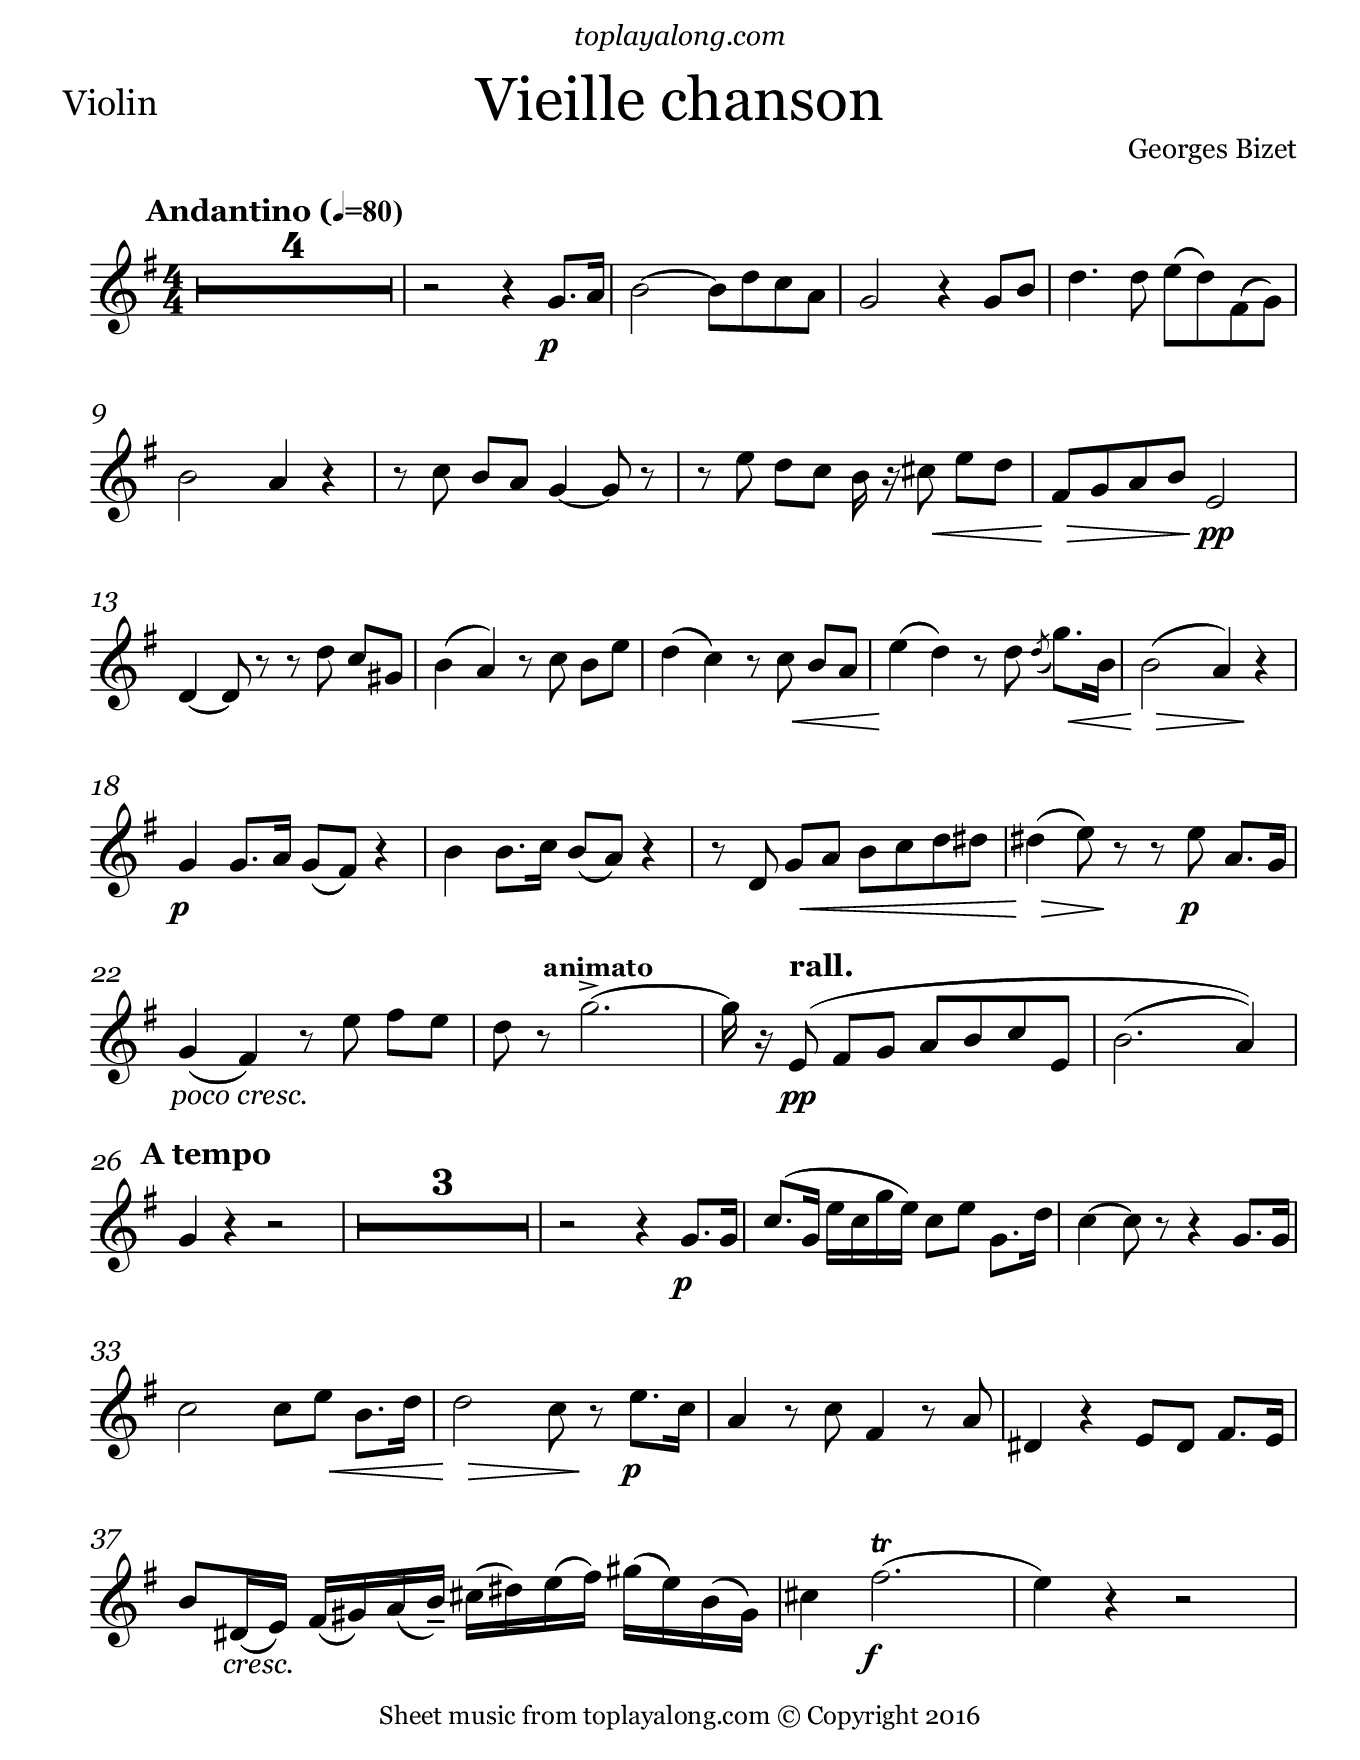 Vieille chanson by Bizet. Sheet music for Violin, page 1.